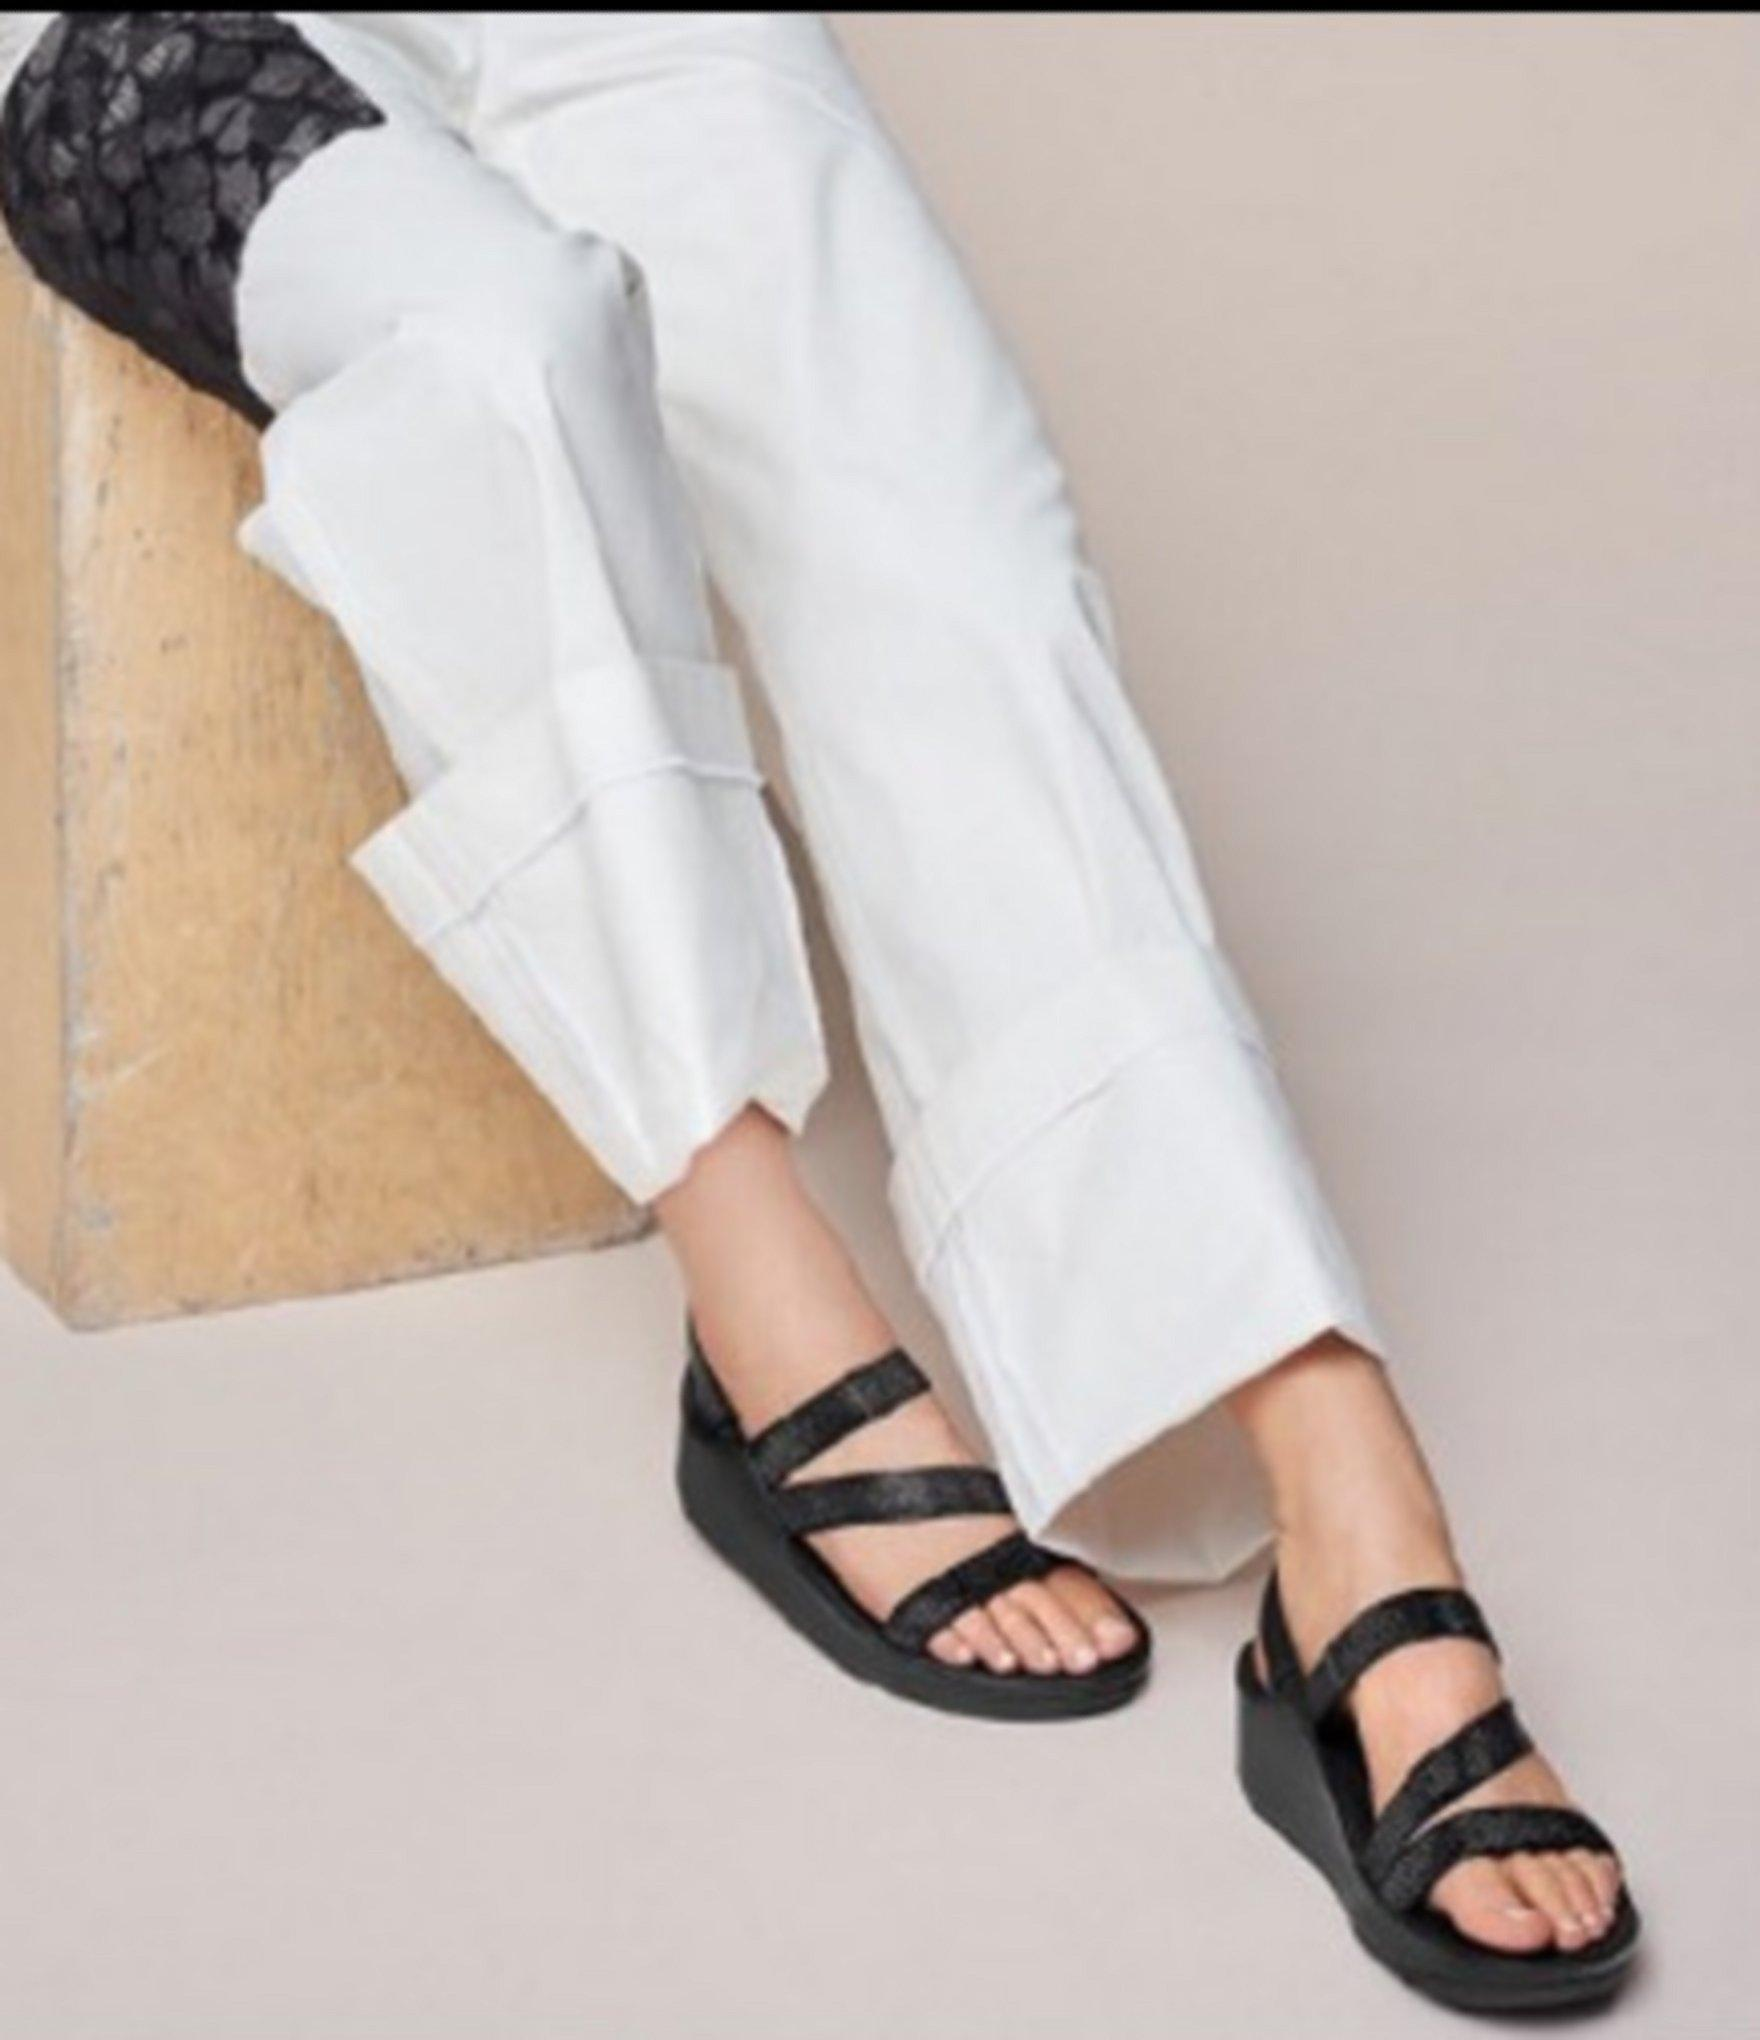 2e1a06ee5 Lyst - Fitflop Crystal Z-strap Sandals in Black